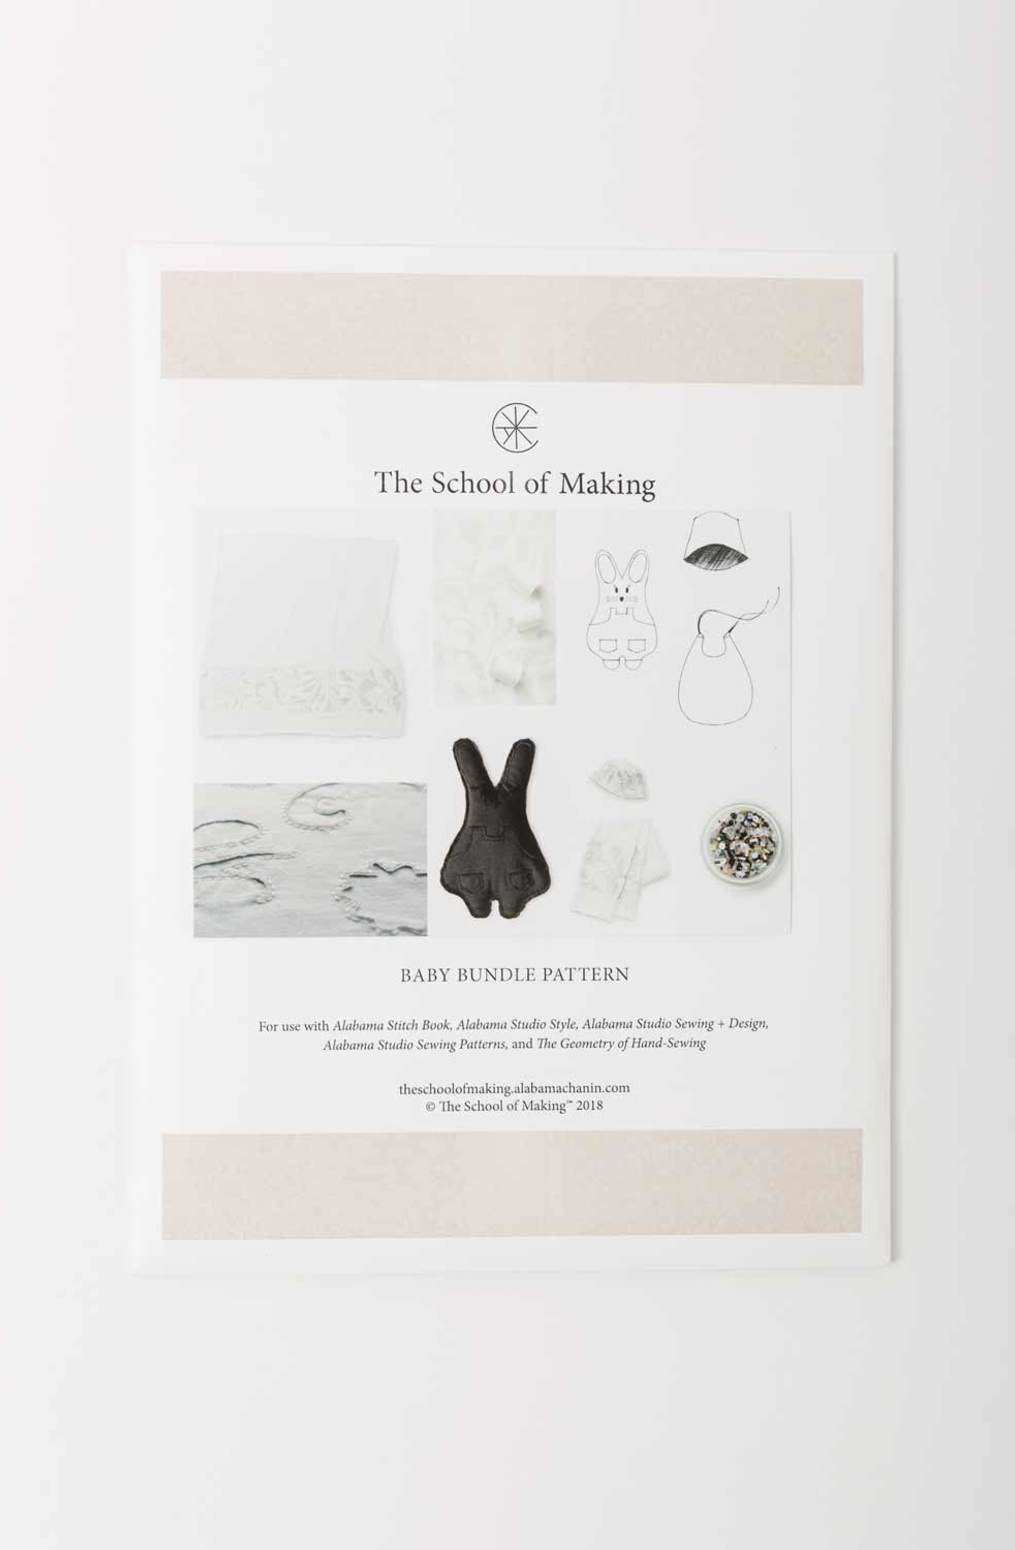 The school of making   build a wardrobe   baby bundle pattern   september 2019   abraham rowe 6